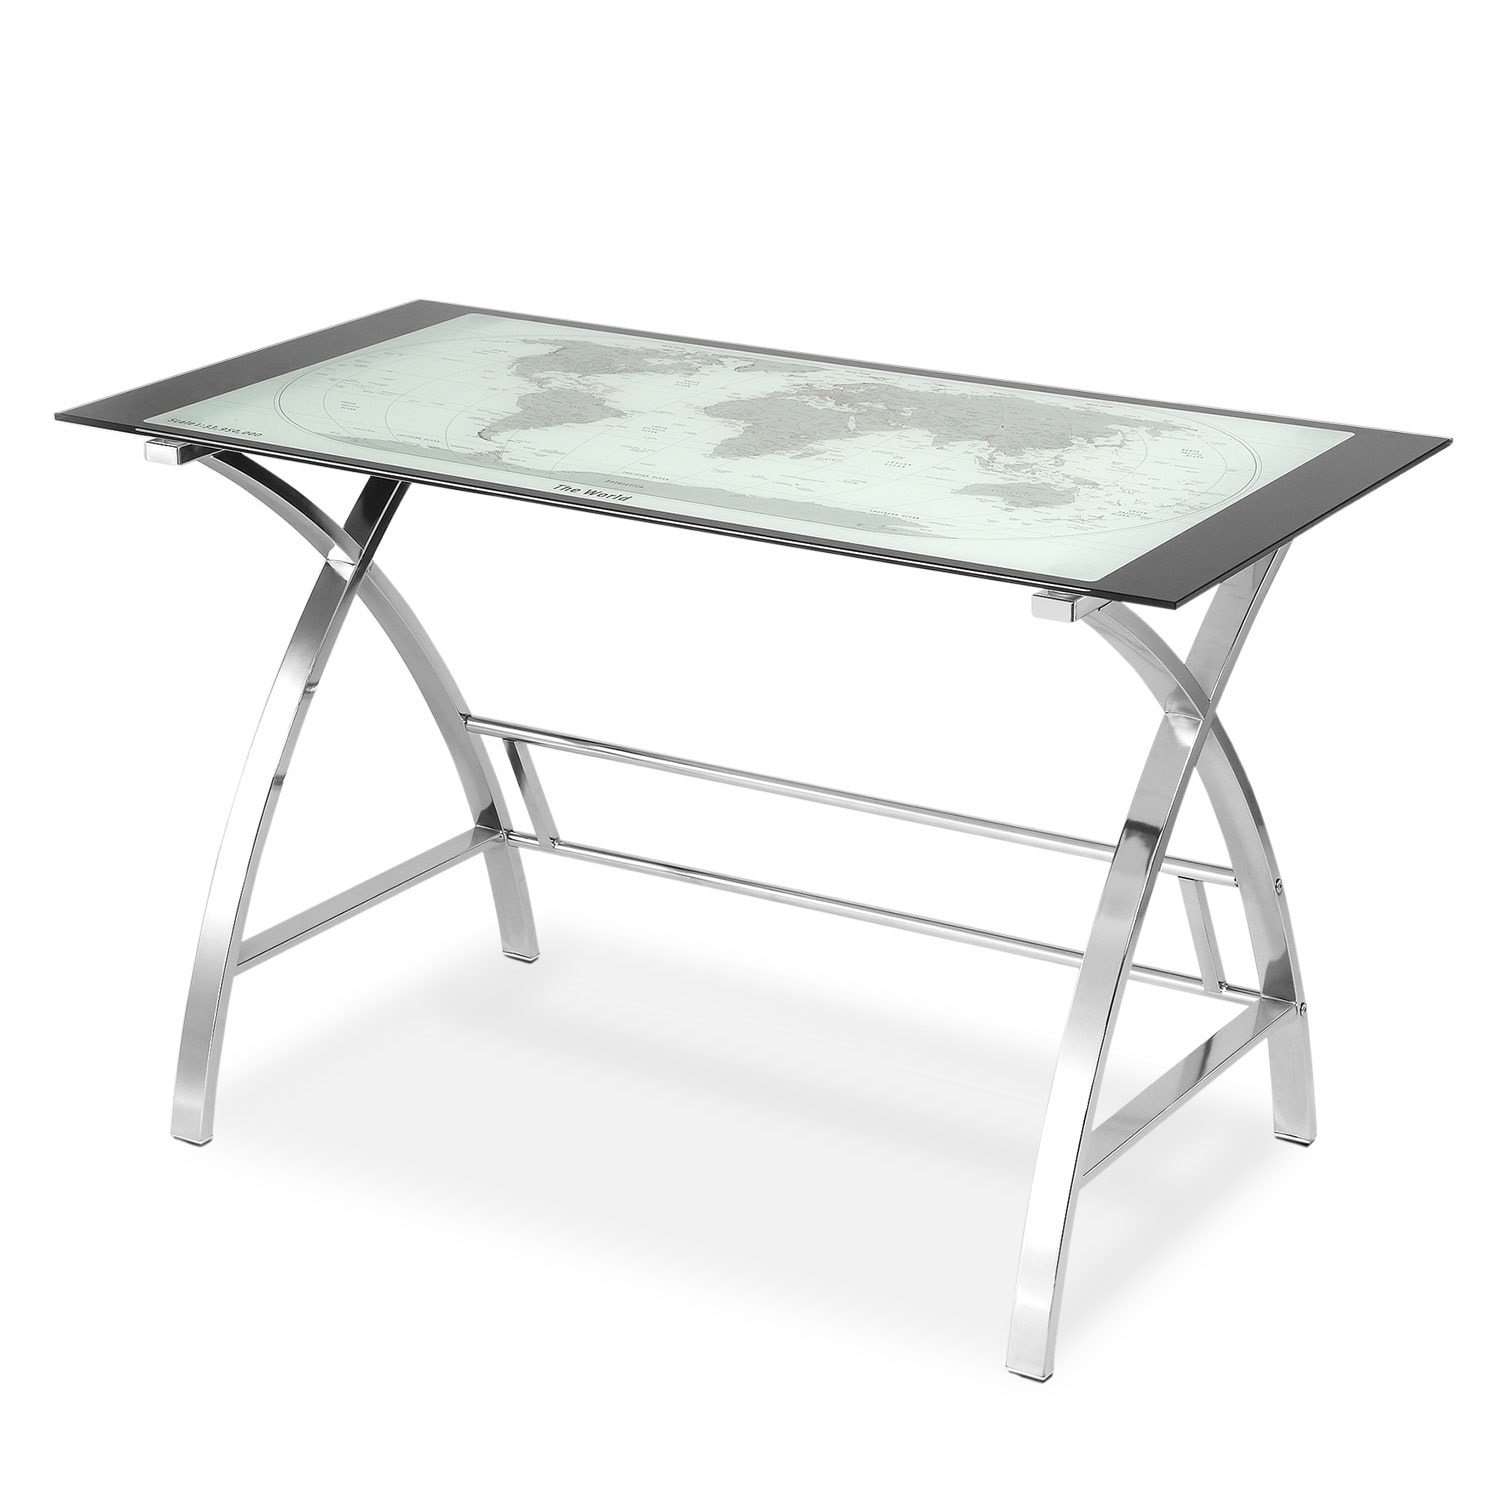 [Aether Desk]